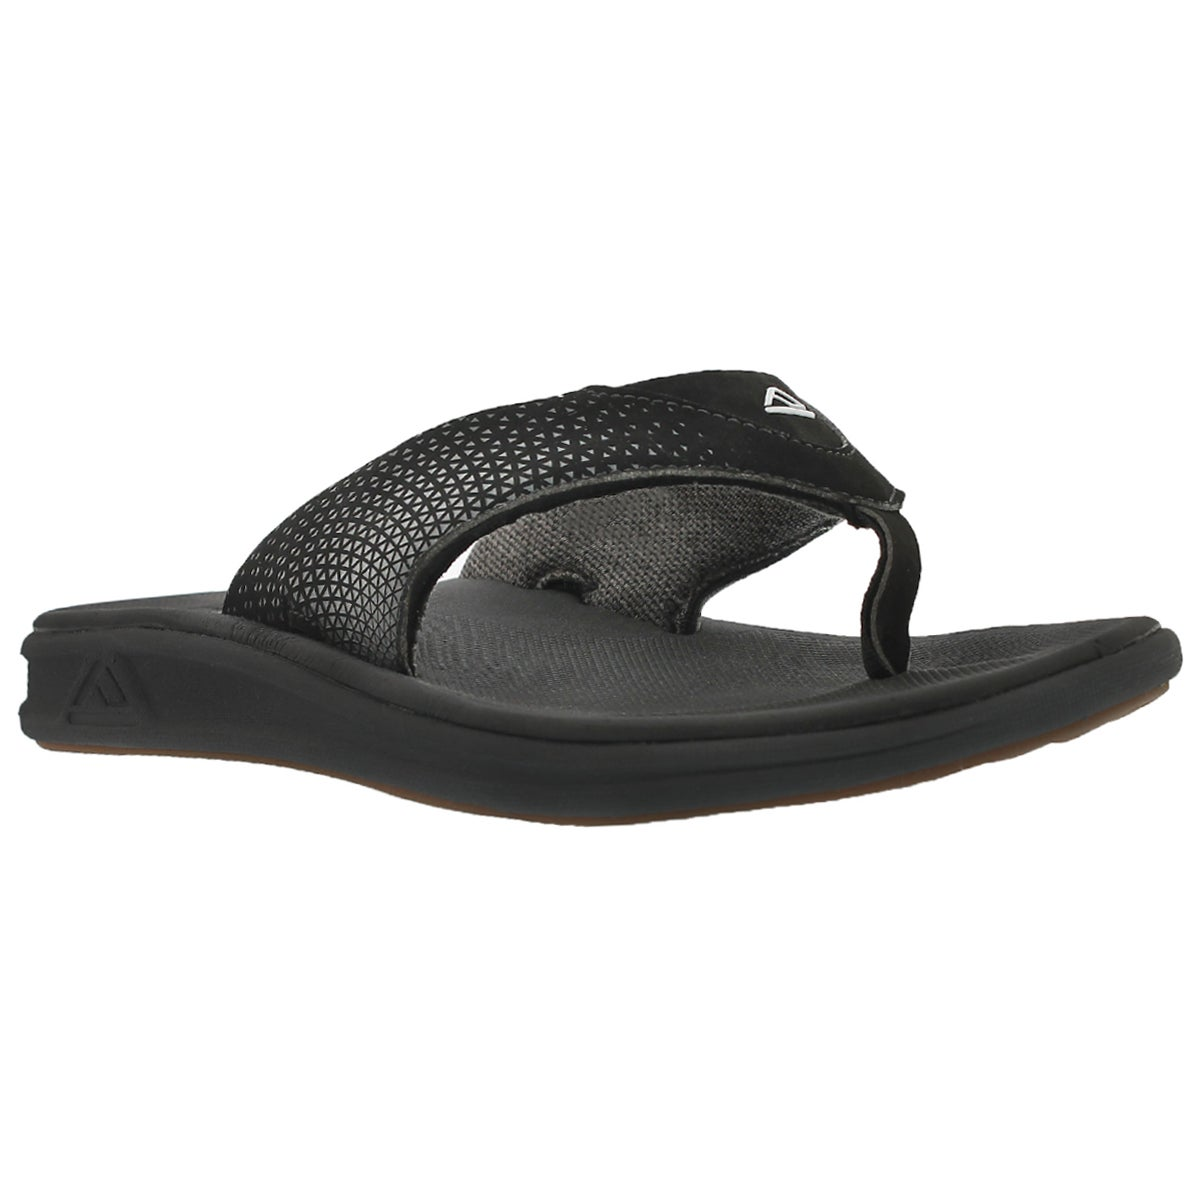 Men's REEF ROVER black thong sandals